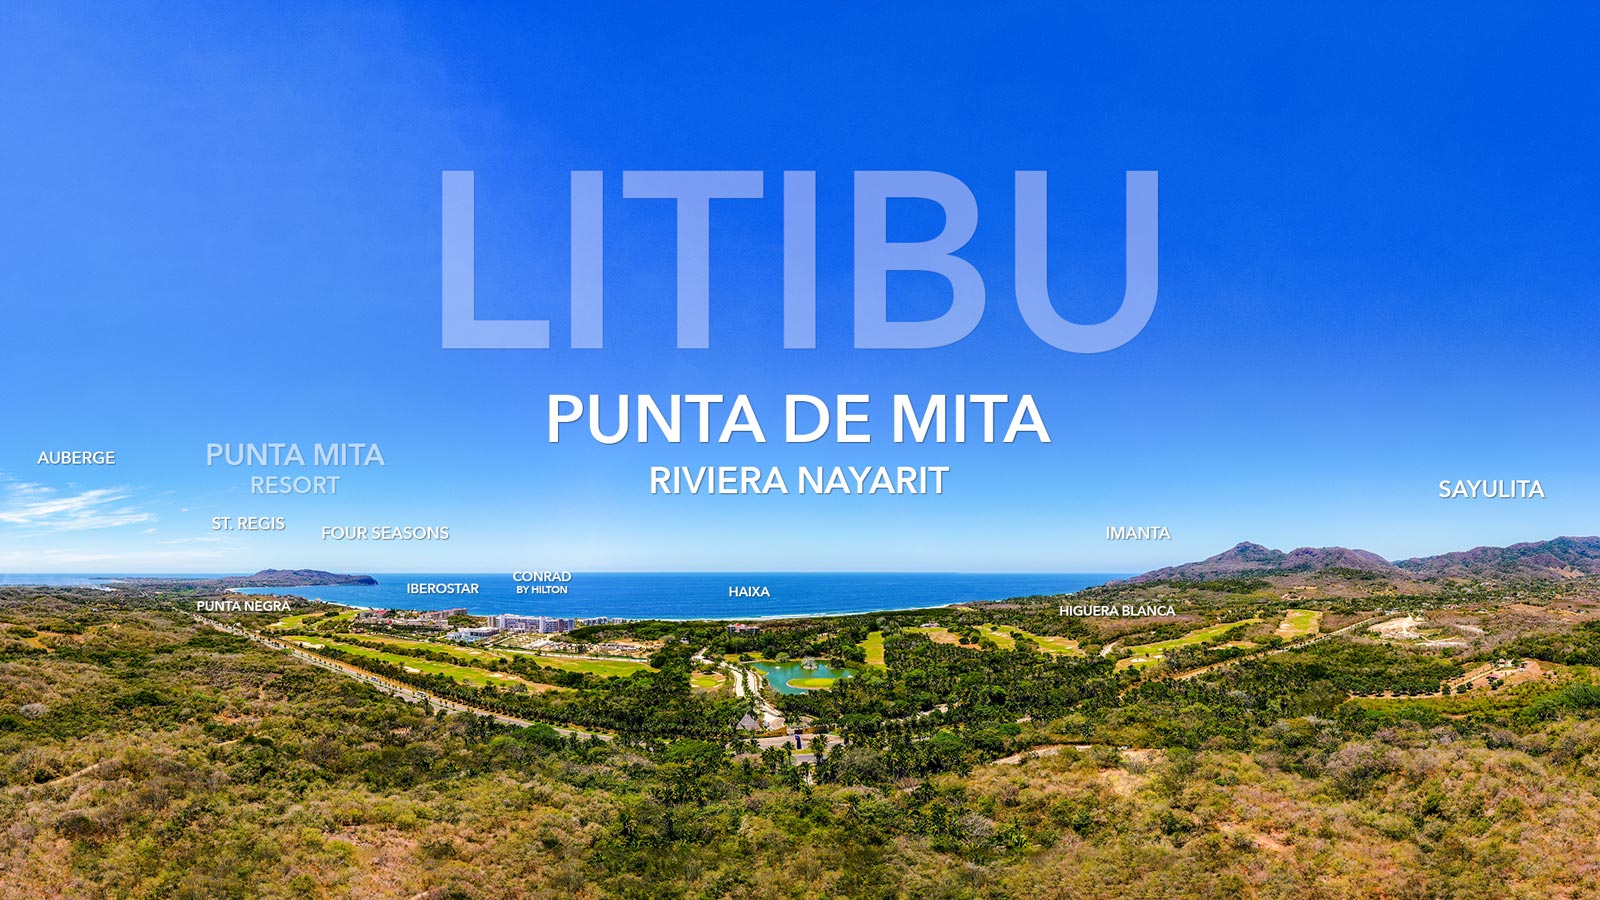 Litibu - FONATUR development in Punta de Mita, Riviera Nayarit featuring the Hilton Conrad, Iberostar, Haixa nd the residential neighborhoods of Punta Negra and Higuera Blanca as well as the divine luxury resort called Imanta.